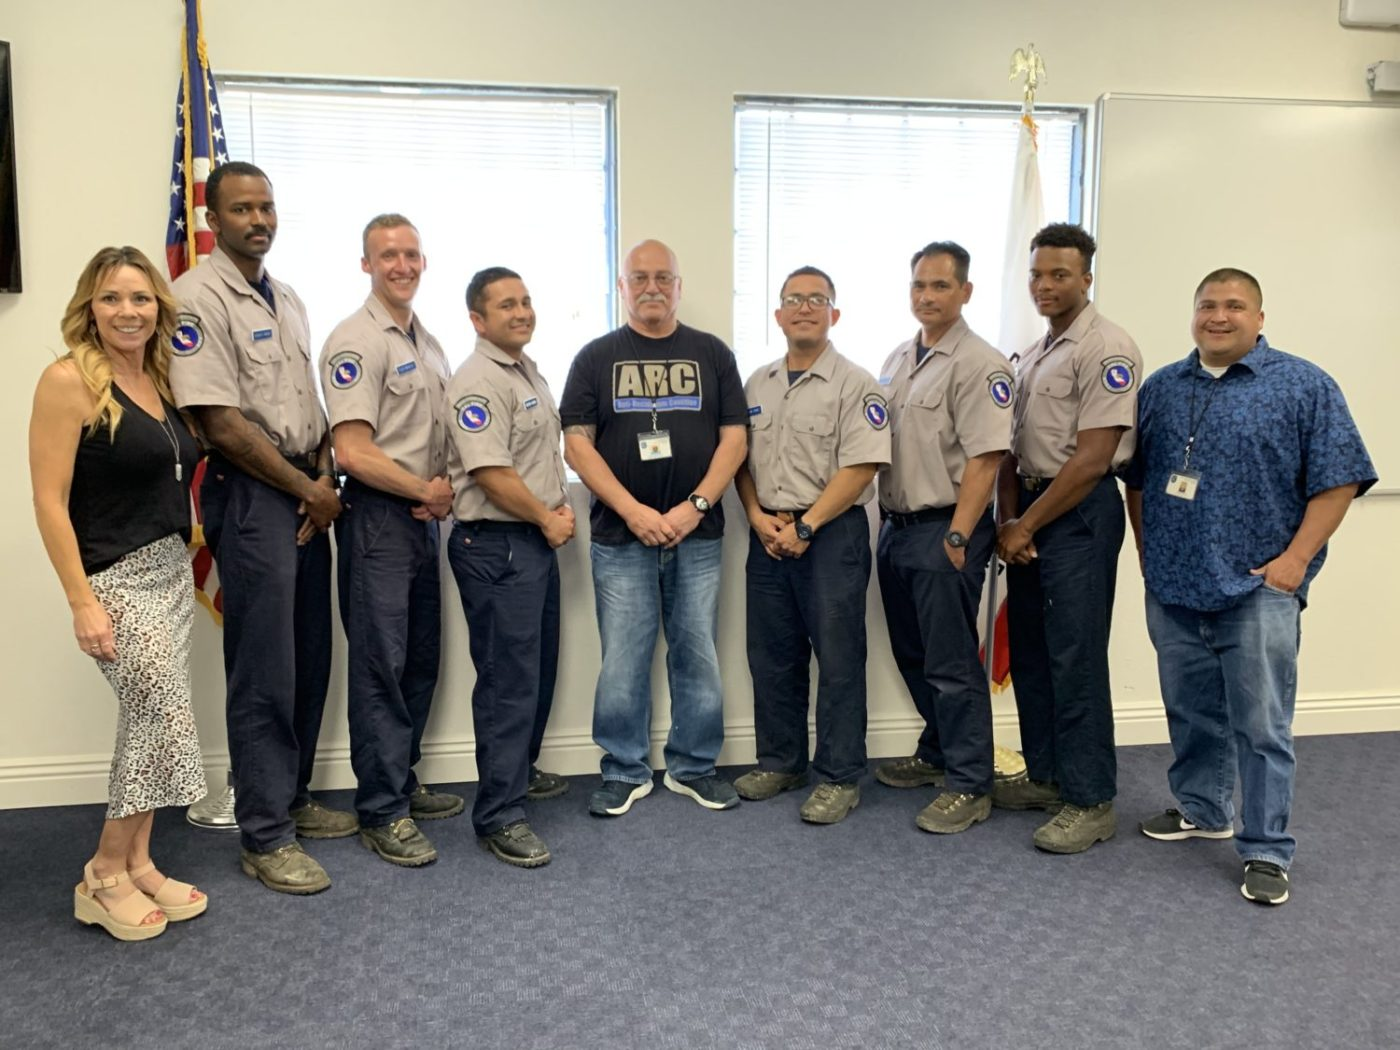 Ventura-Training-Center-Programs-Coordinator-Michelle-Garcia-with-Anti-Recidivism-Coalition-staff-formerly-incarcerated-firefighter-trainees-1400x1050, As fire season bears down on thirsty California, incarcerated crews prepare to battle flames, Local News & Views